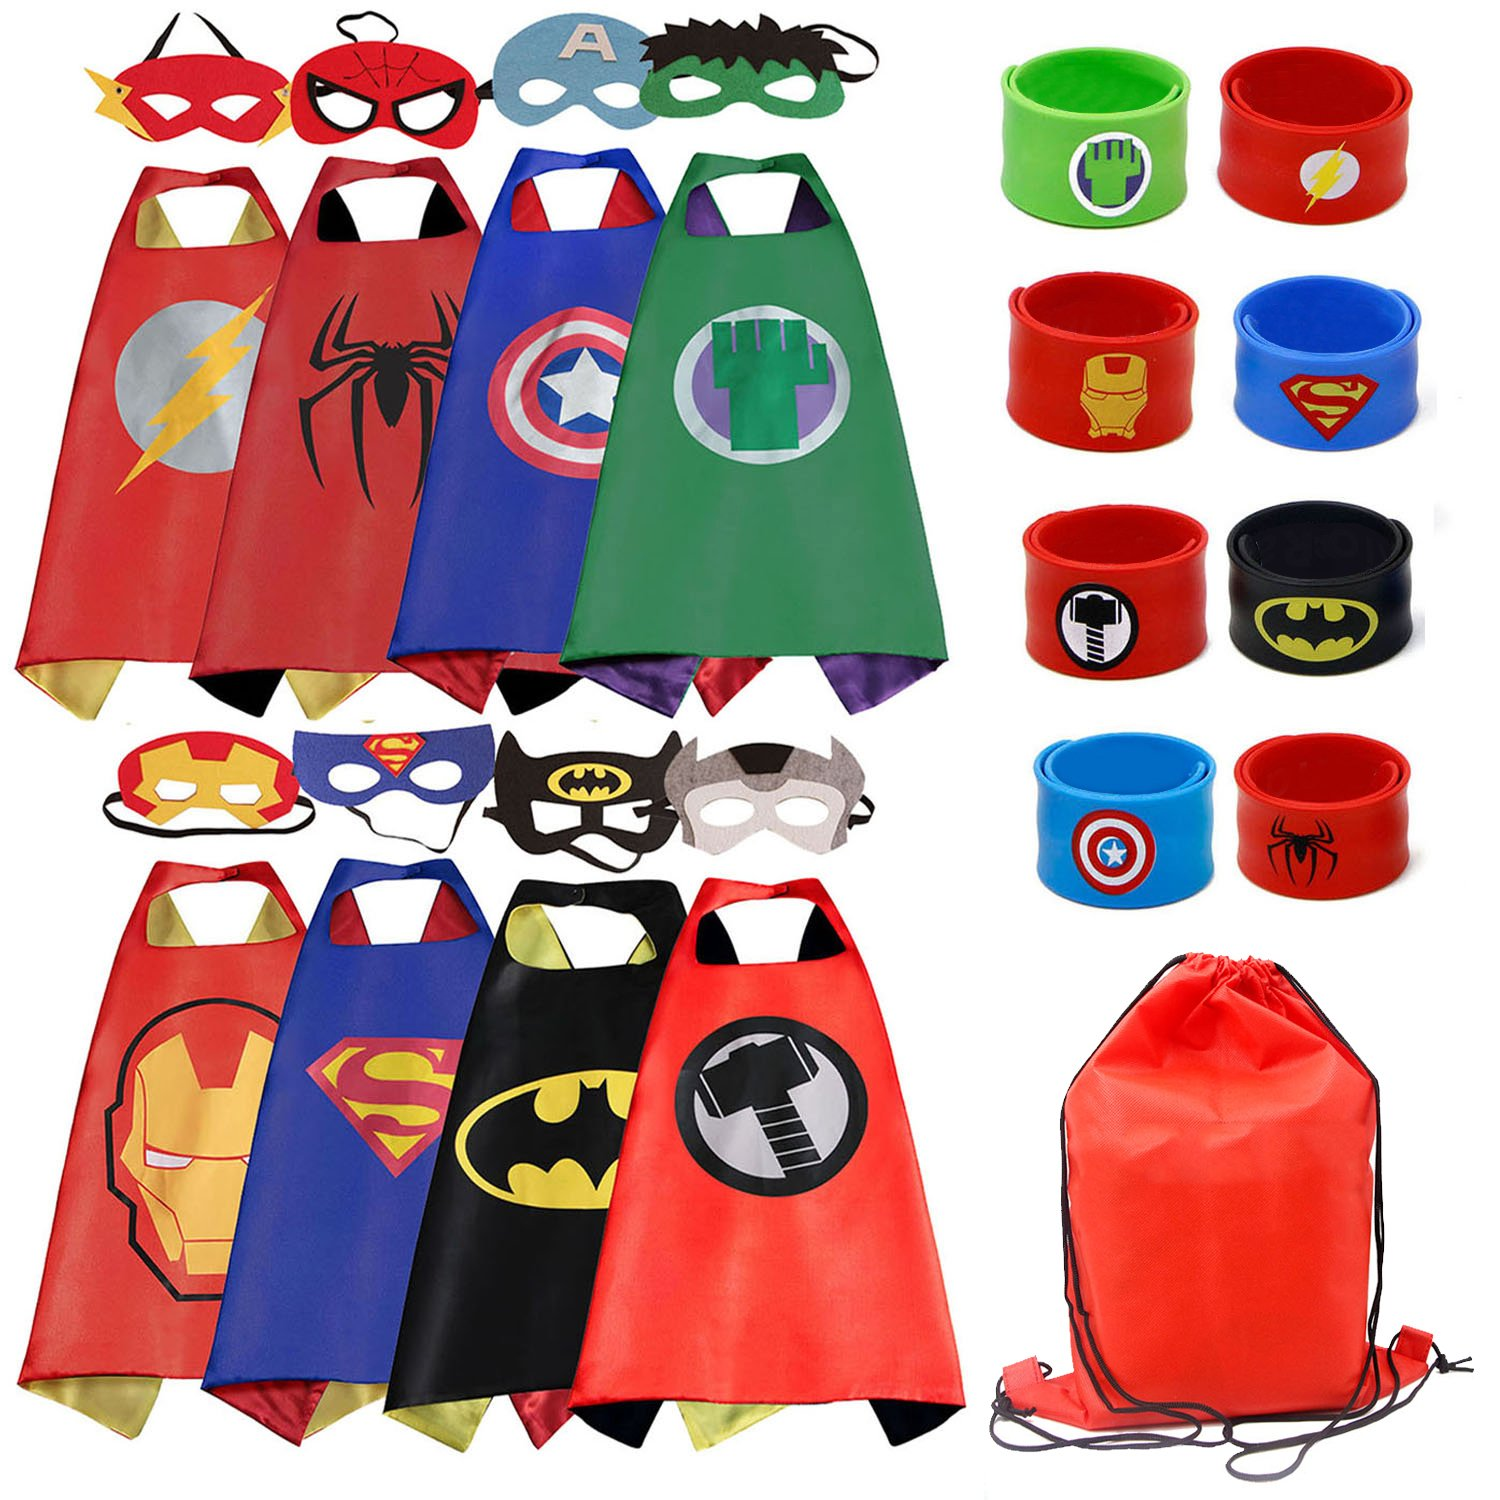 Dress up Costume Cape and Mask Set with Matching Shaped Rubber Wristbands and 1 Drawstring Bag for Kids, Birthday Party Children(8pcs for boy)